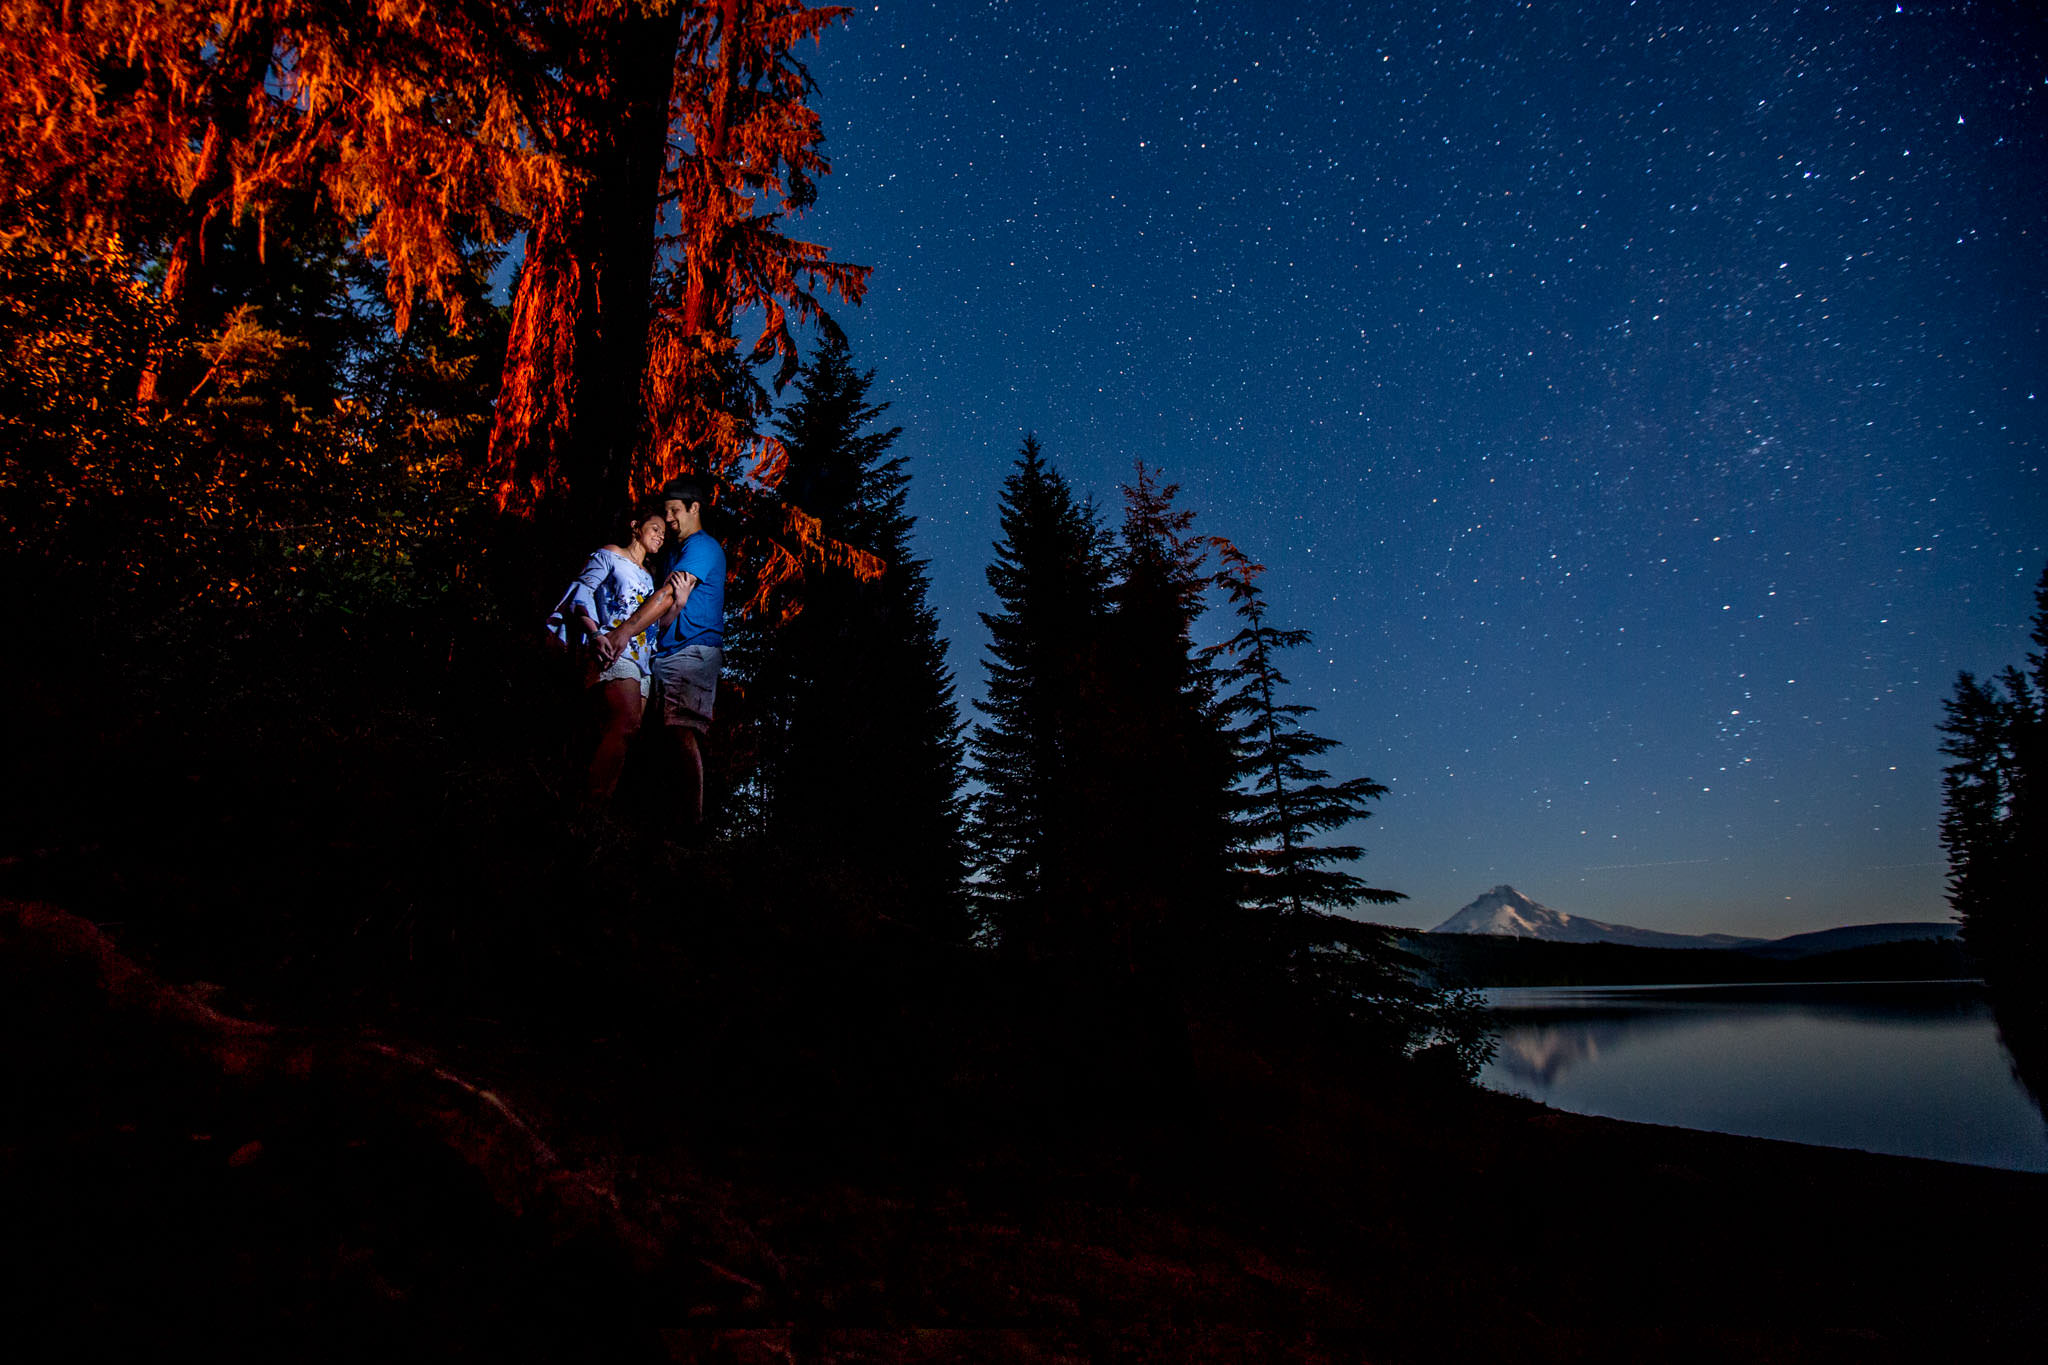 Engagement portrait near lake using astro photography with stars